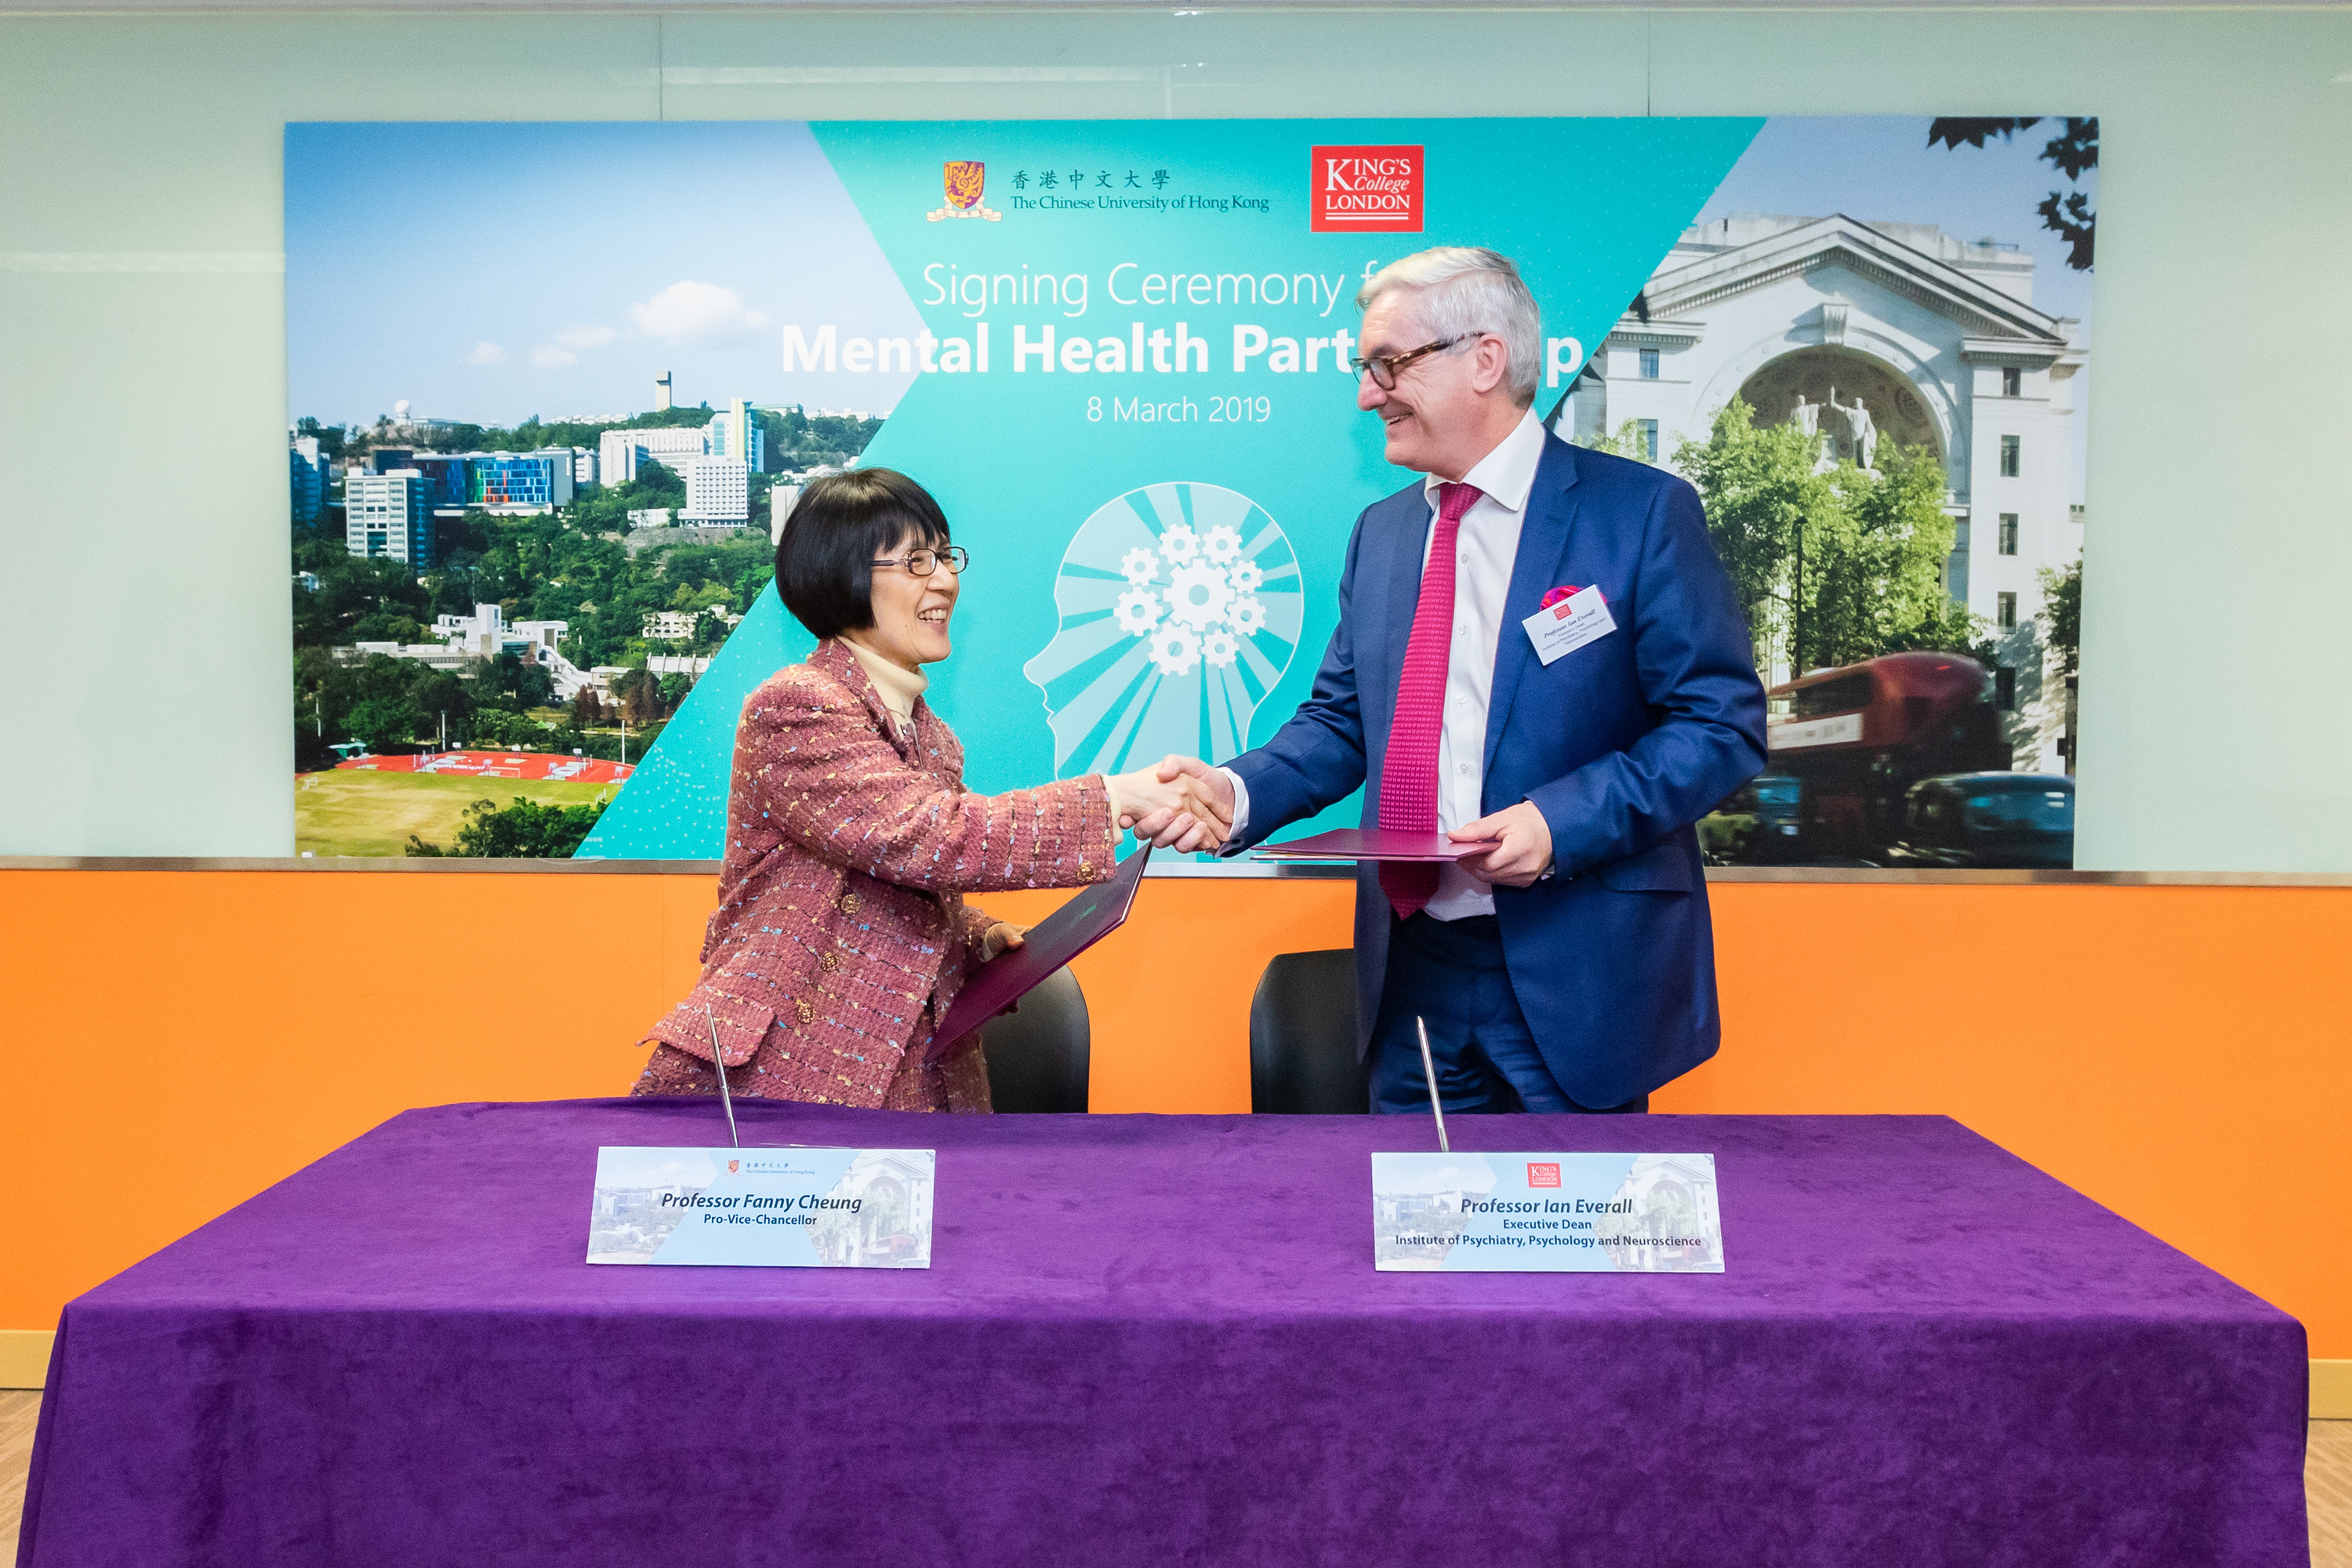 Prof. Fanny CHEUNG, Pro-Vice-Chancellor of The Chinese University of Hong Kong (CUHK) and Prof. Ian EVERALL, Executive Dean of the Institute of Psychiatry, Psychology, and Neuroscience at King's College London (KCL) sign an MOU for the collaboration between the two universities, with a focus on mental health research.